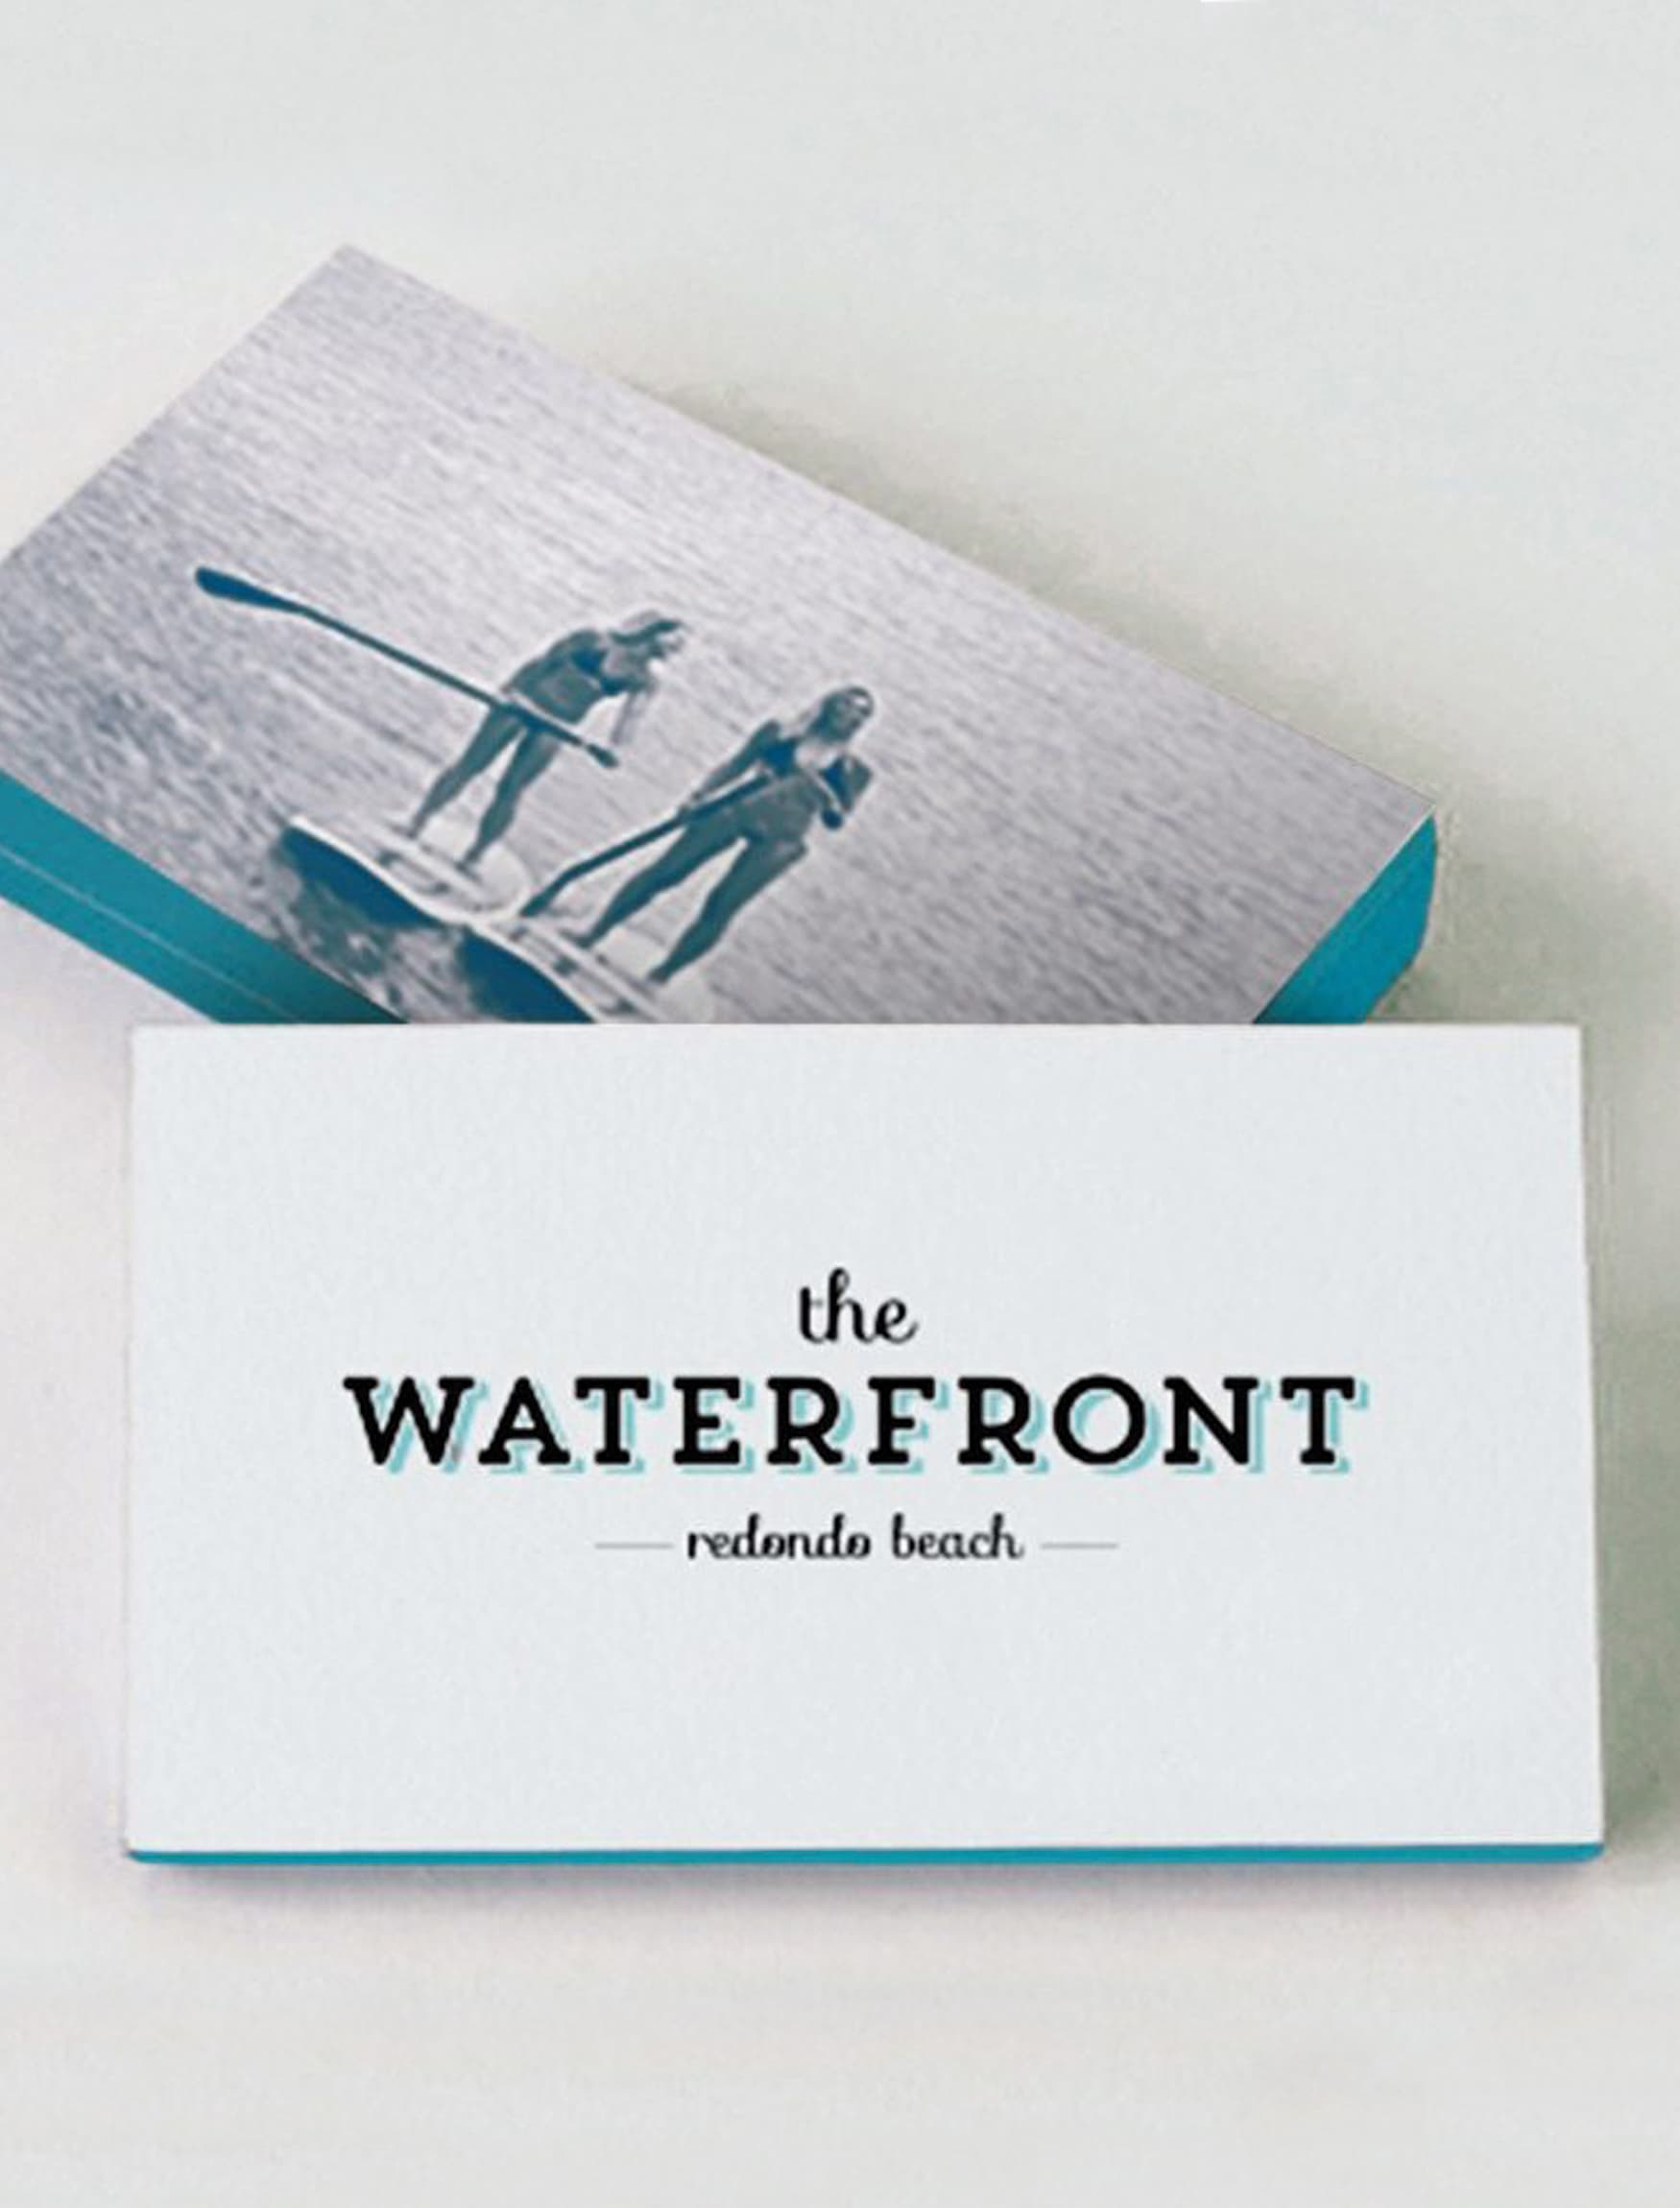 RSM Design worked with CenterCal Properties to develop a brand strategy and voice for The Waterfront, a mixed-use project in Redondo Beach, California. Branding and Logo Design.